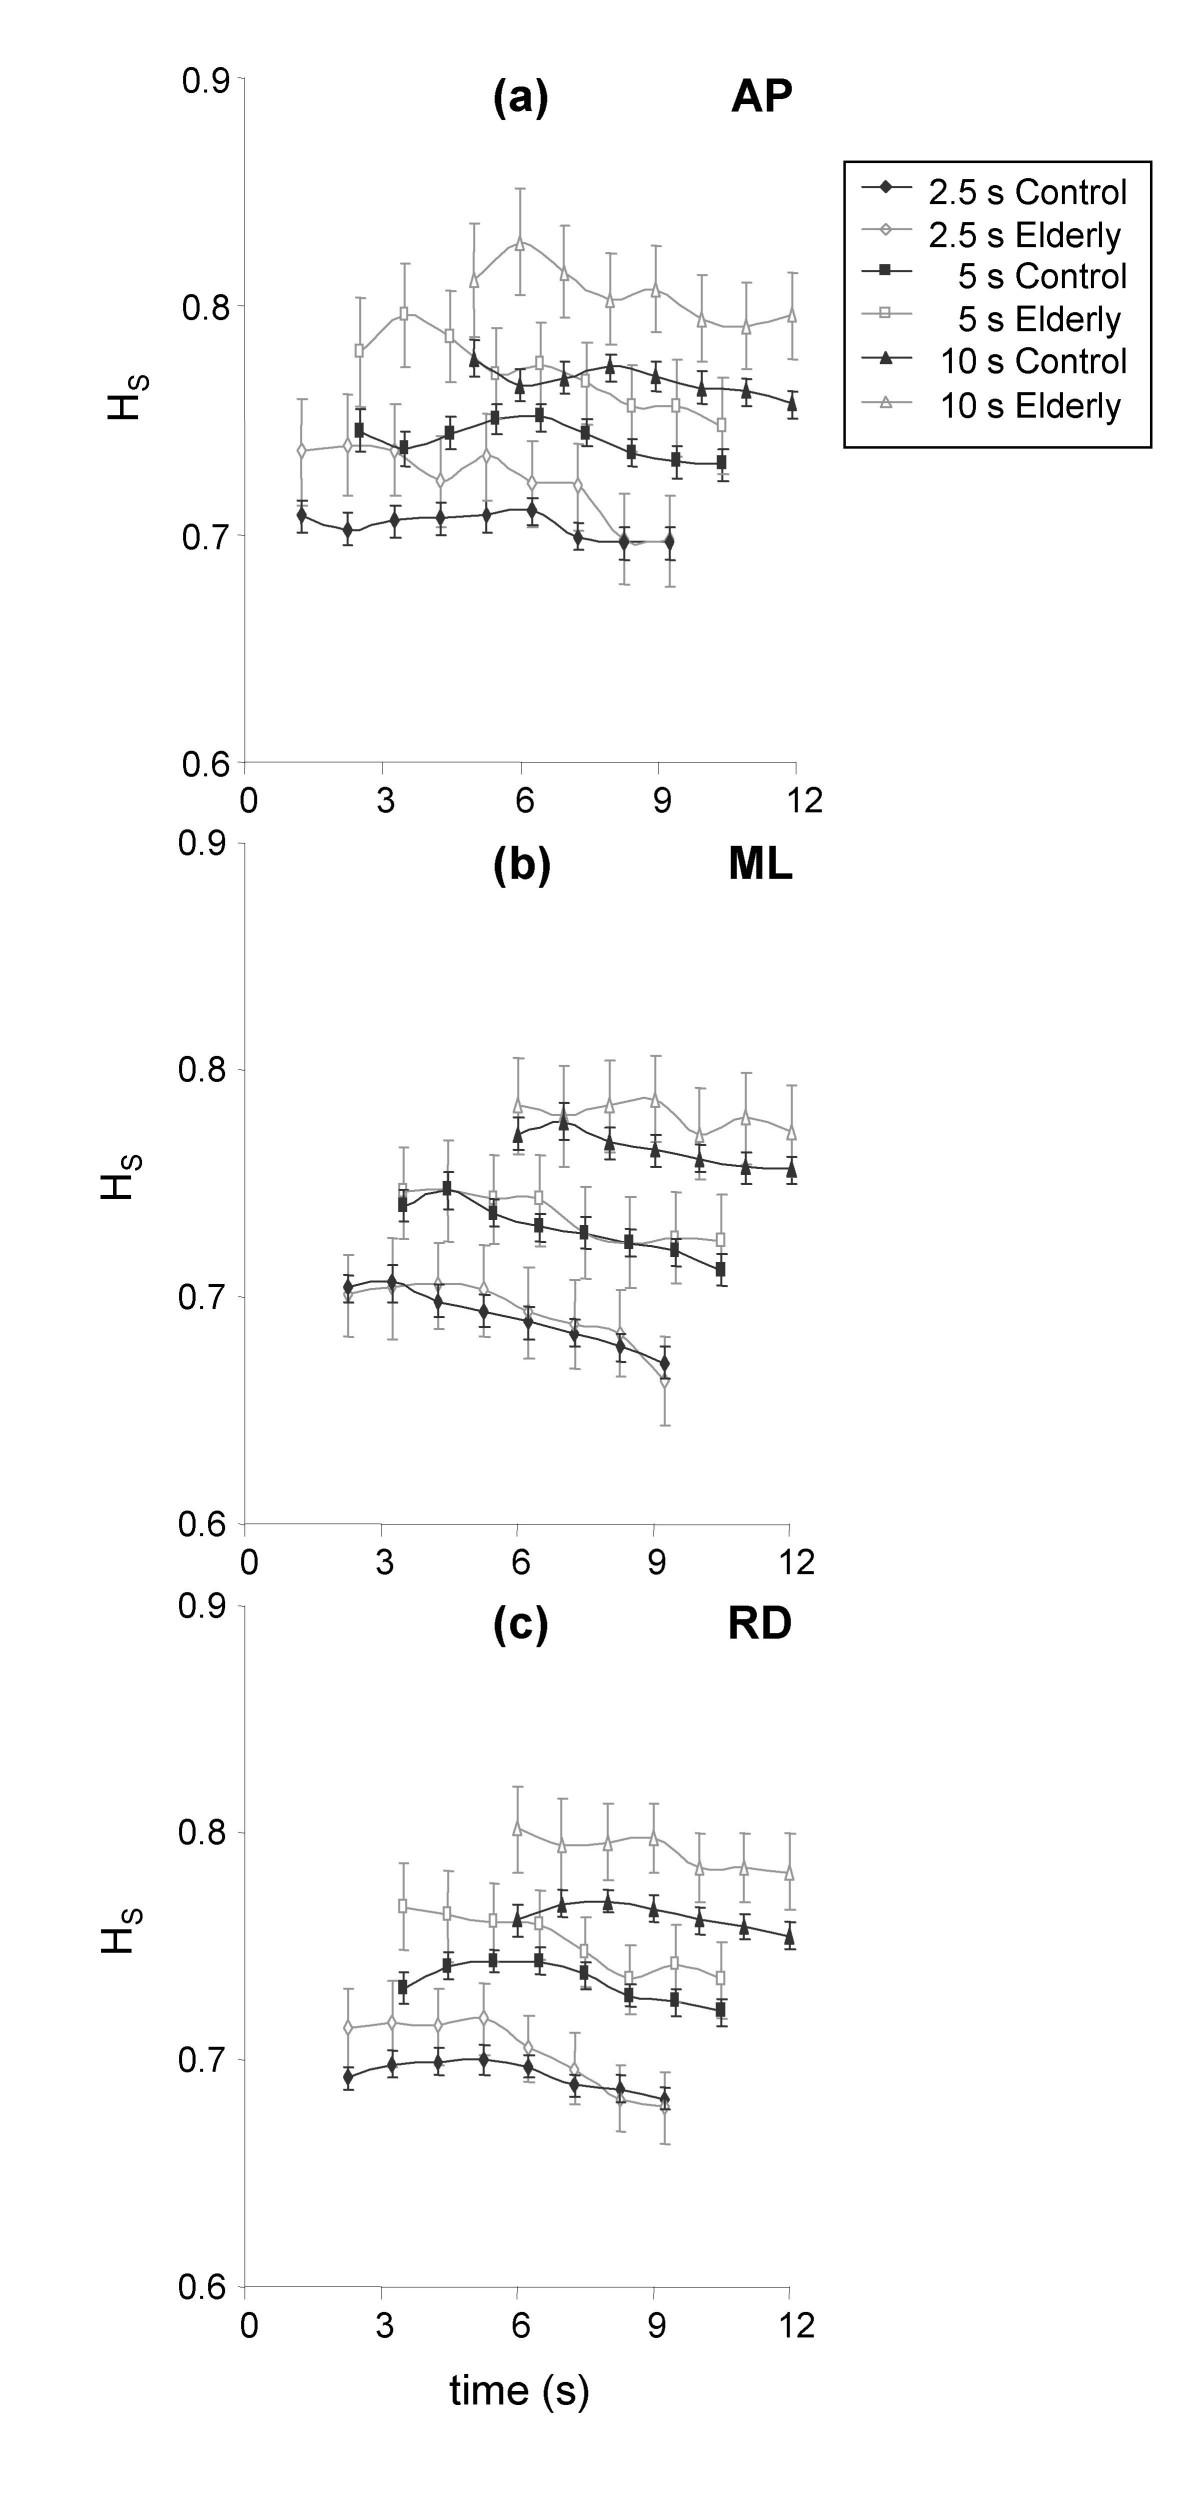 https://static-content.springer.com/image/art%3A10.1186%2F1743-0003-4-12/MediaObjects/12984_2006_Article_88_Fig3_HTML.jpg